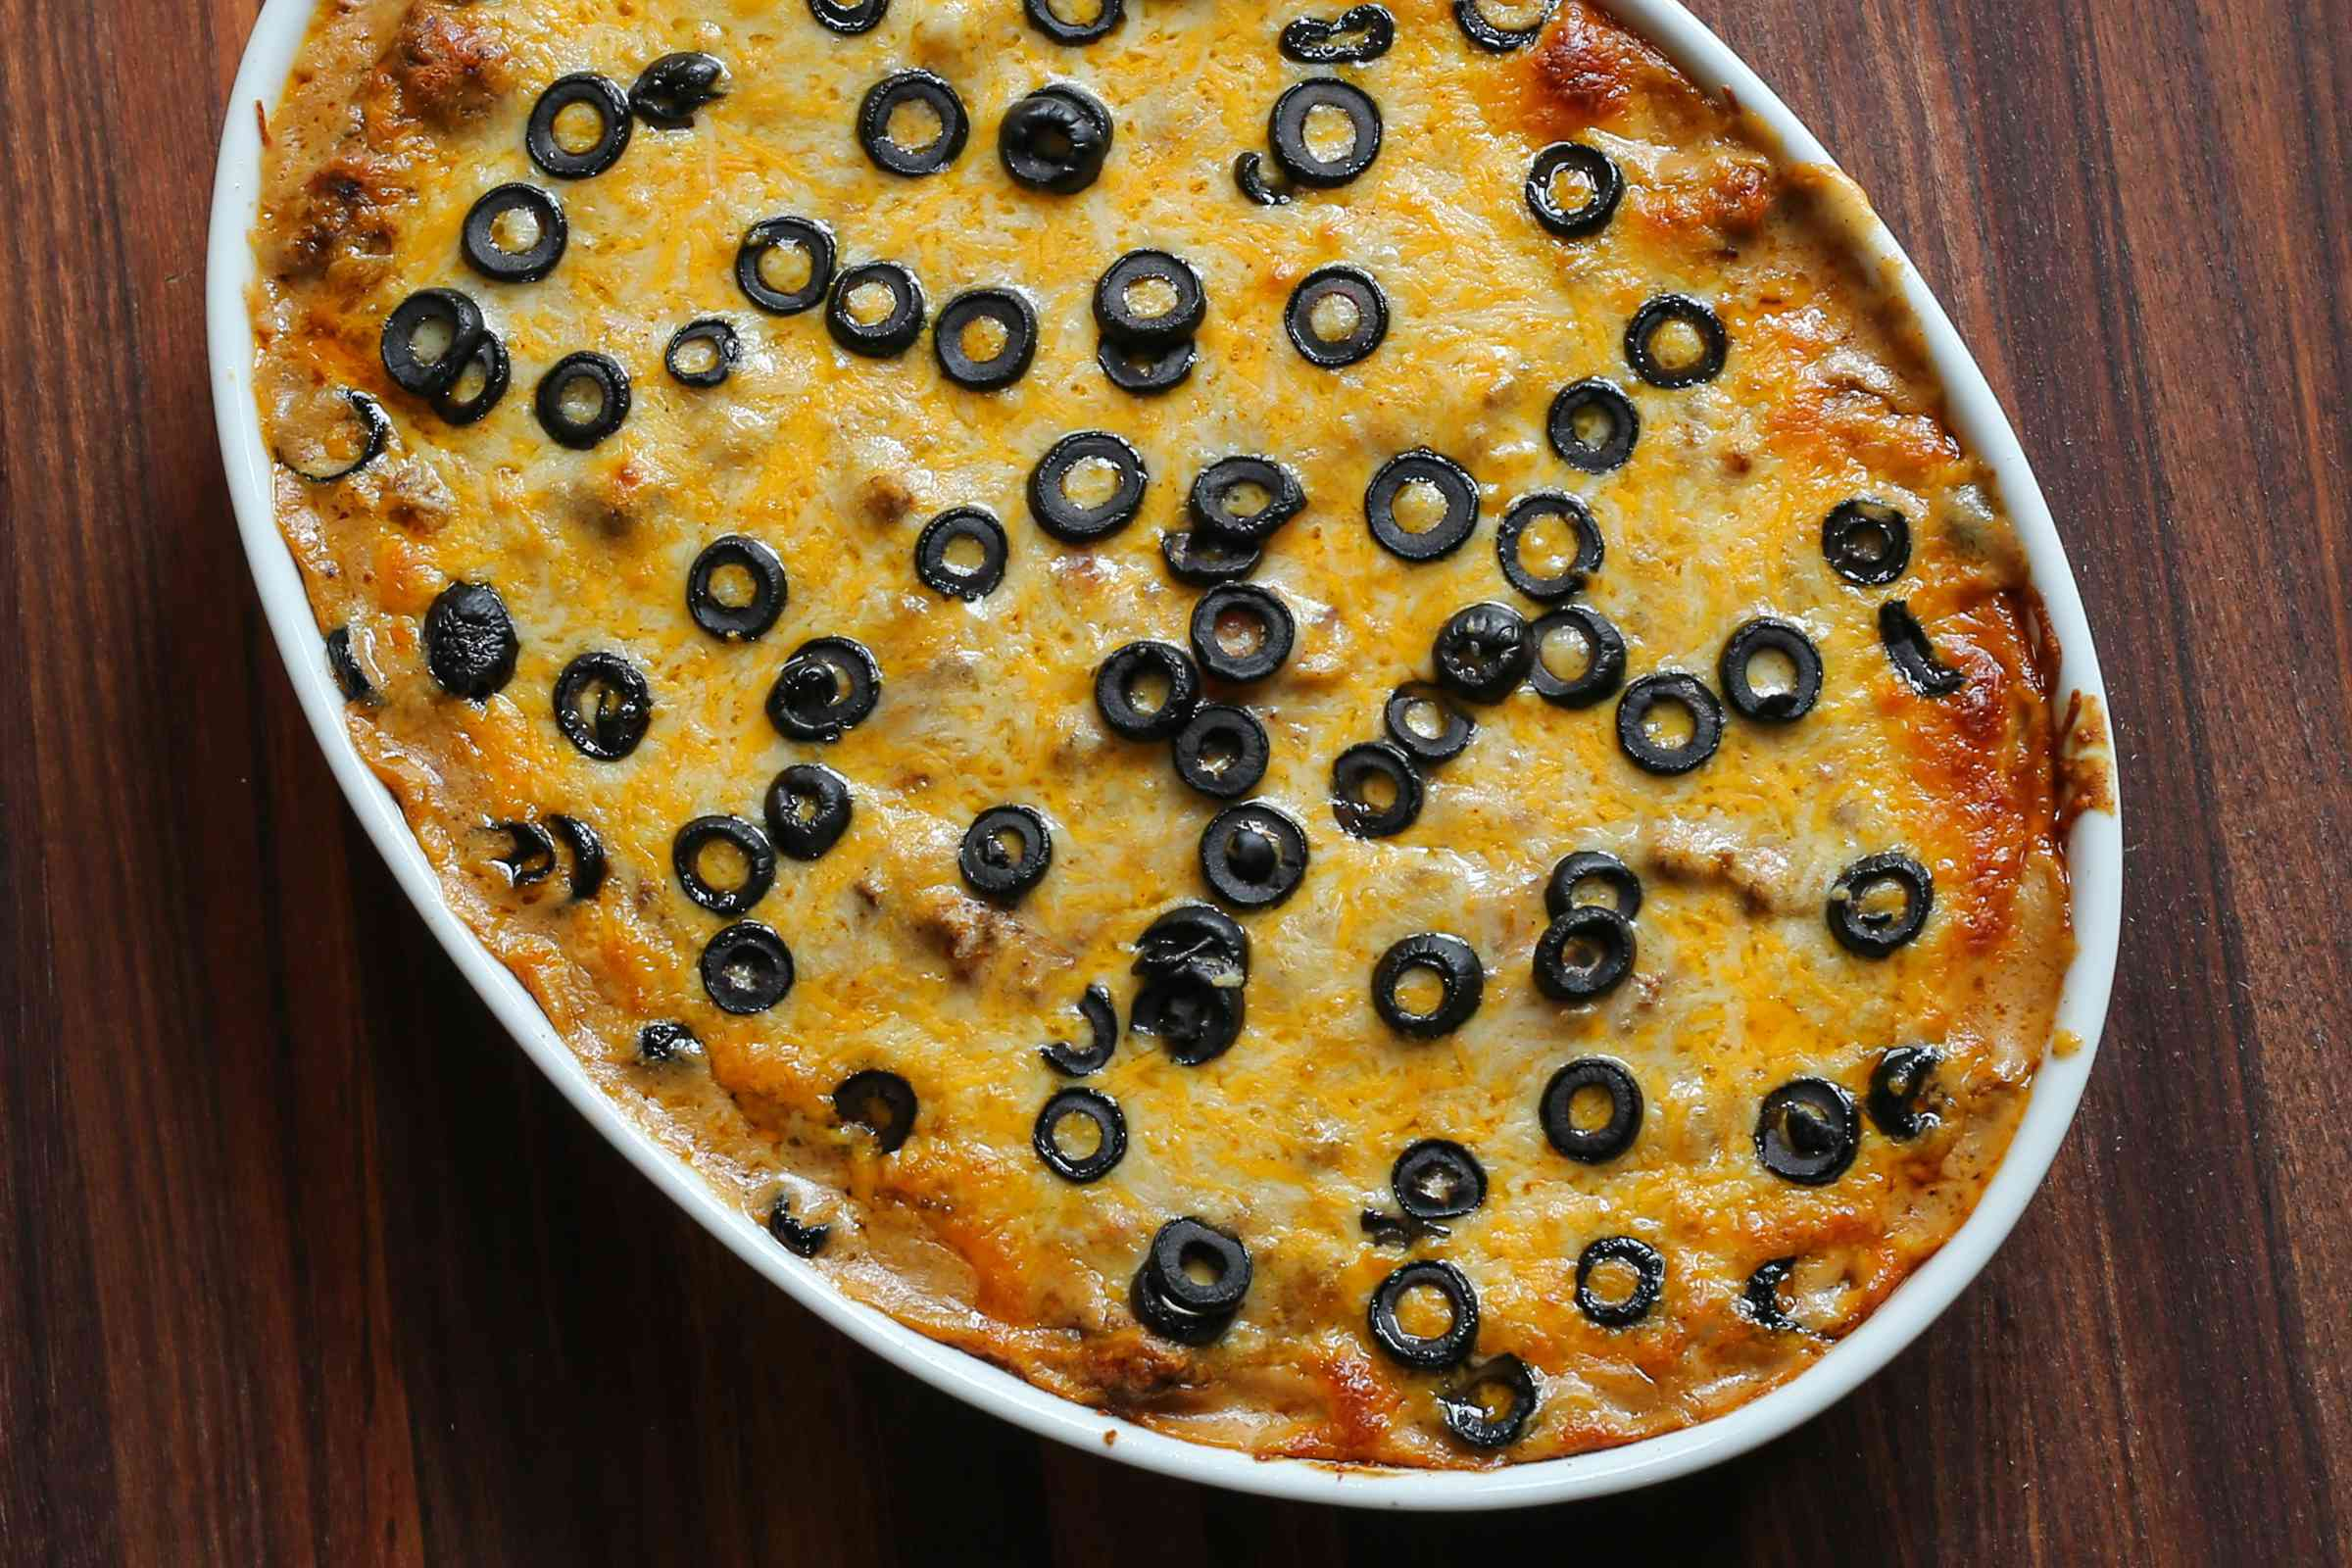 Enchilada casserole with ground beef and cheese.